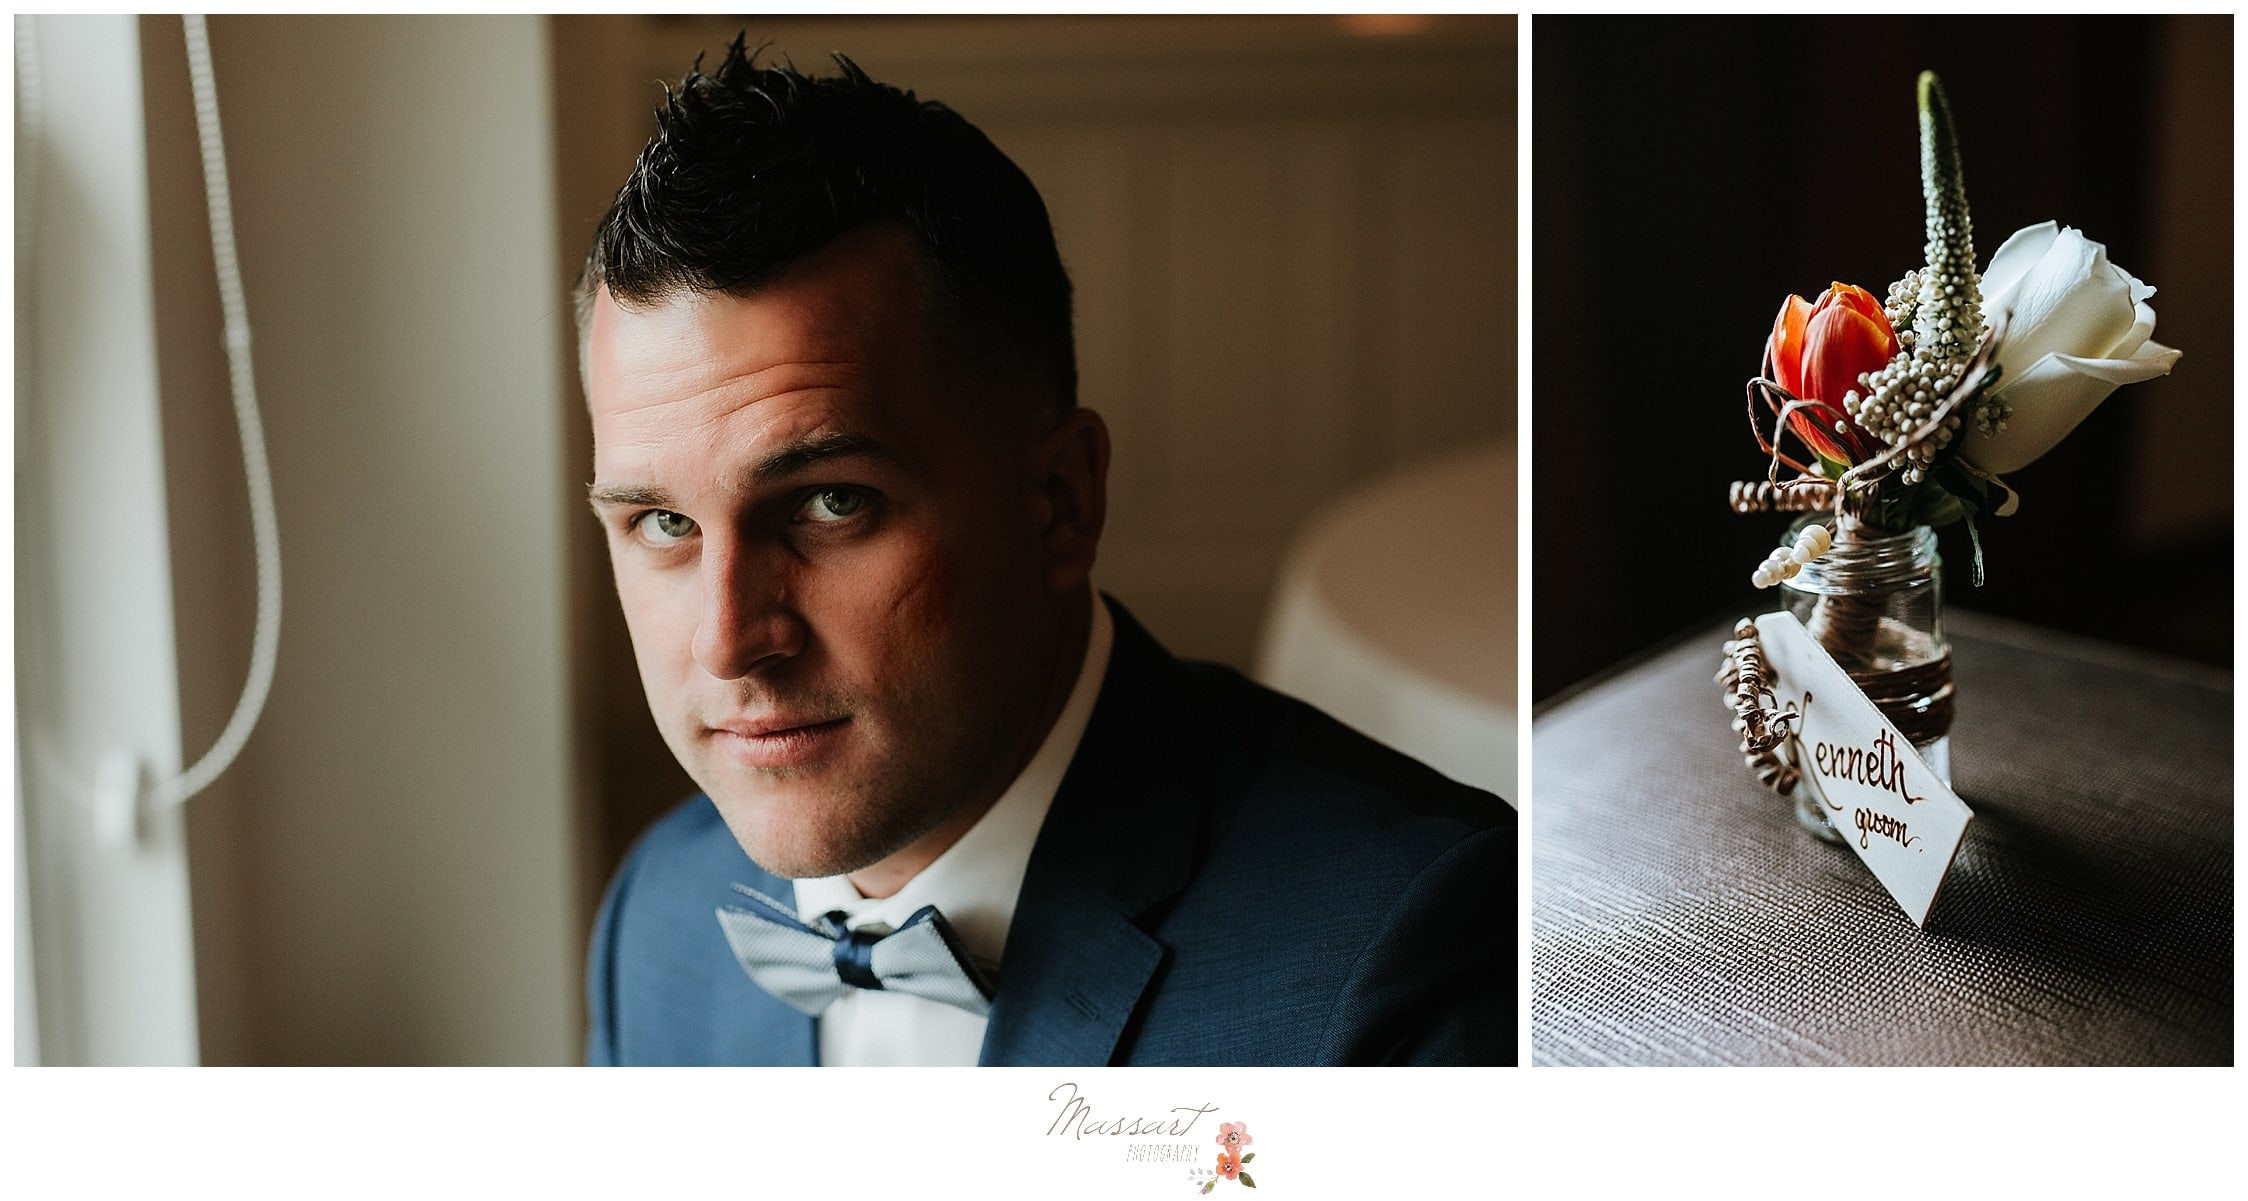 Groom with coral and ivory boutonnière for summer wedding at Harbor Lights photographed by Massart Photography, RI wedding photographers.